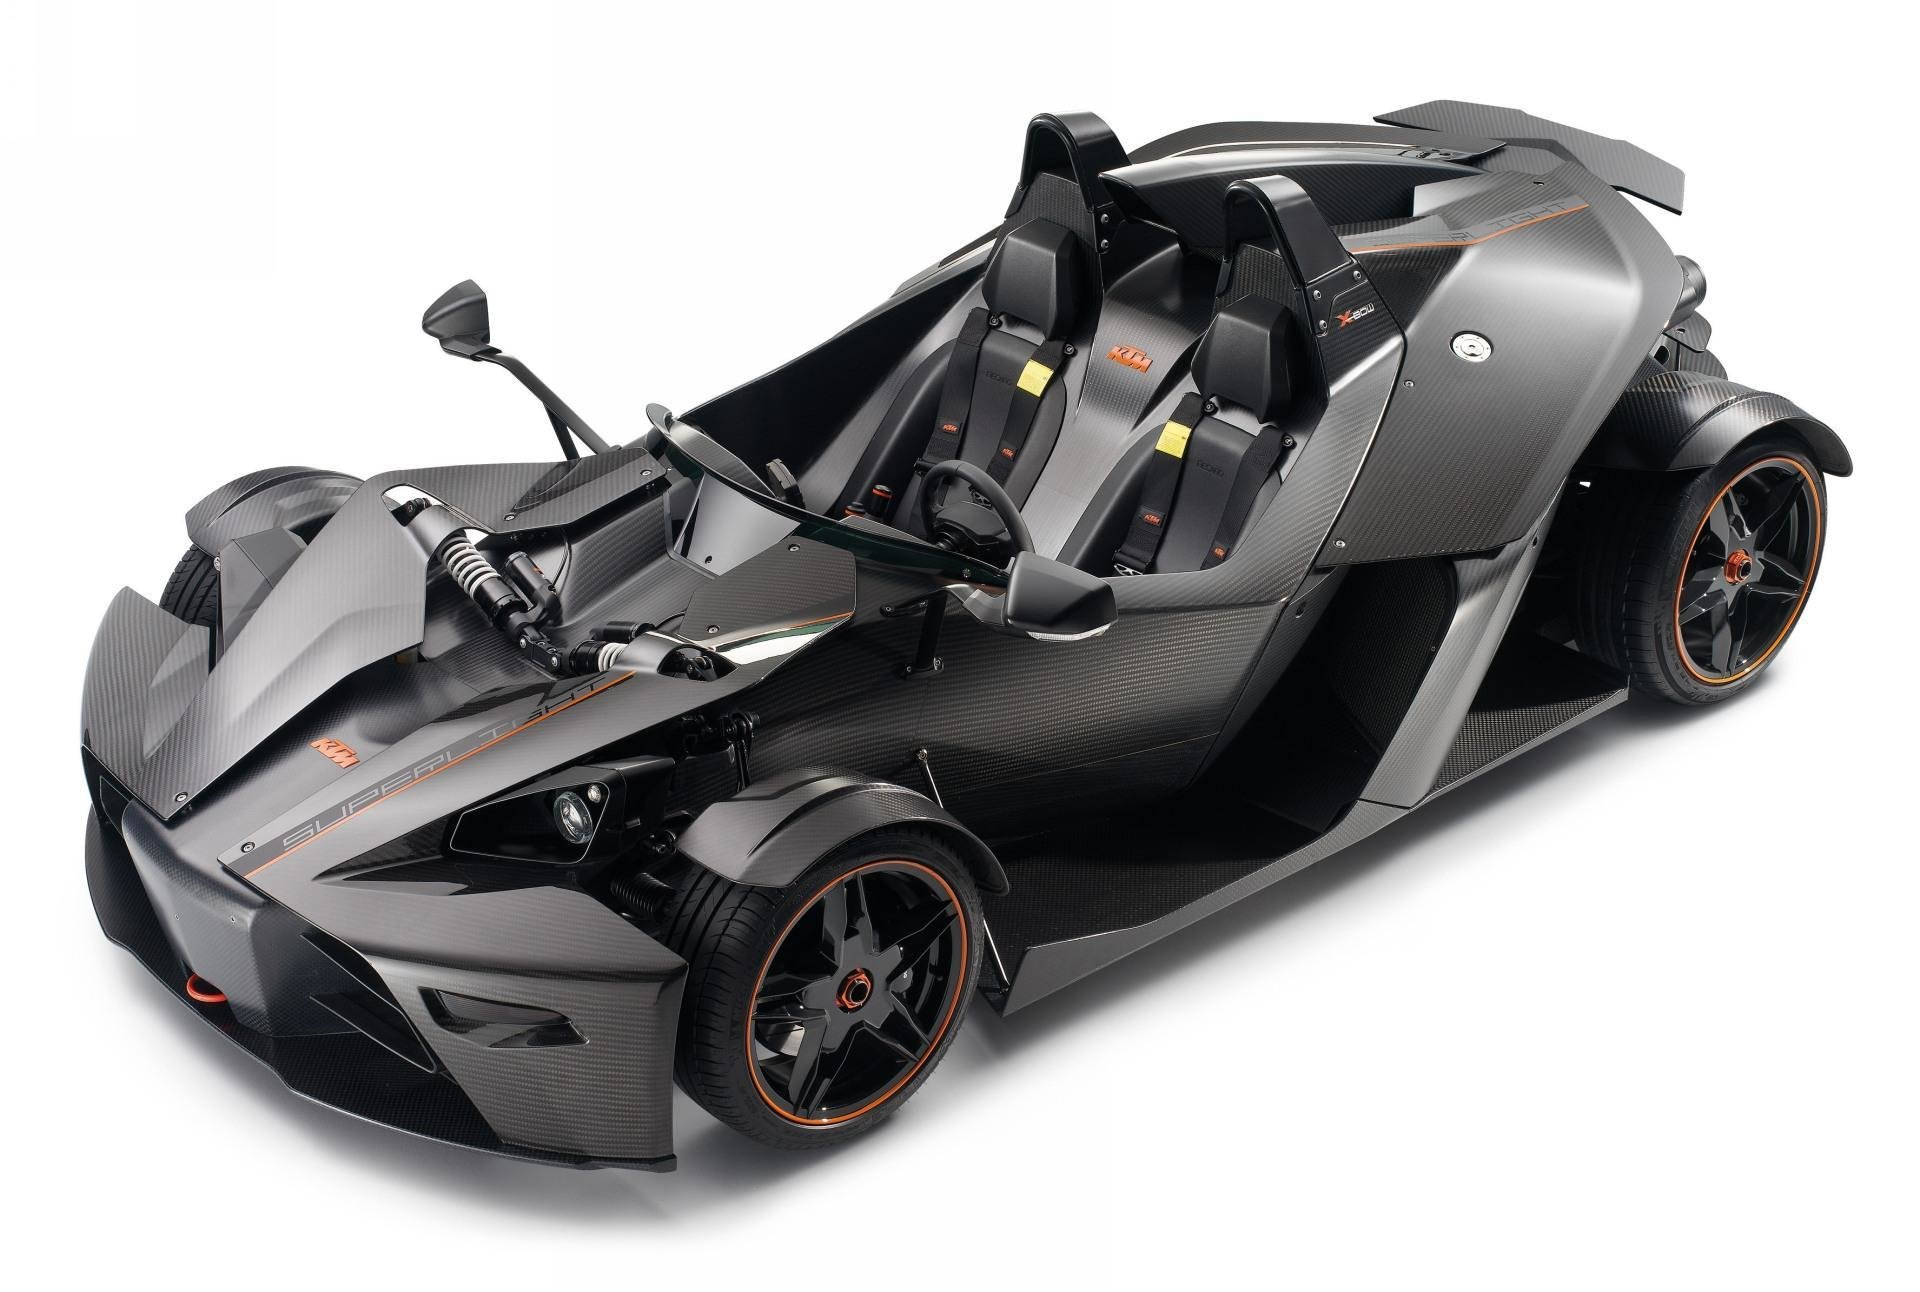 New 2009 Ktm X Bow Superlight Conceptcarz Com On This Month